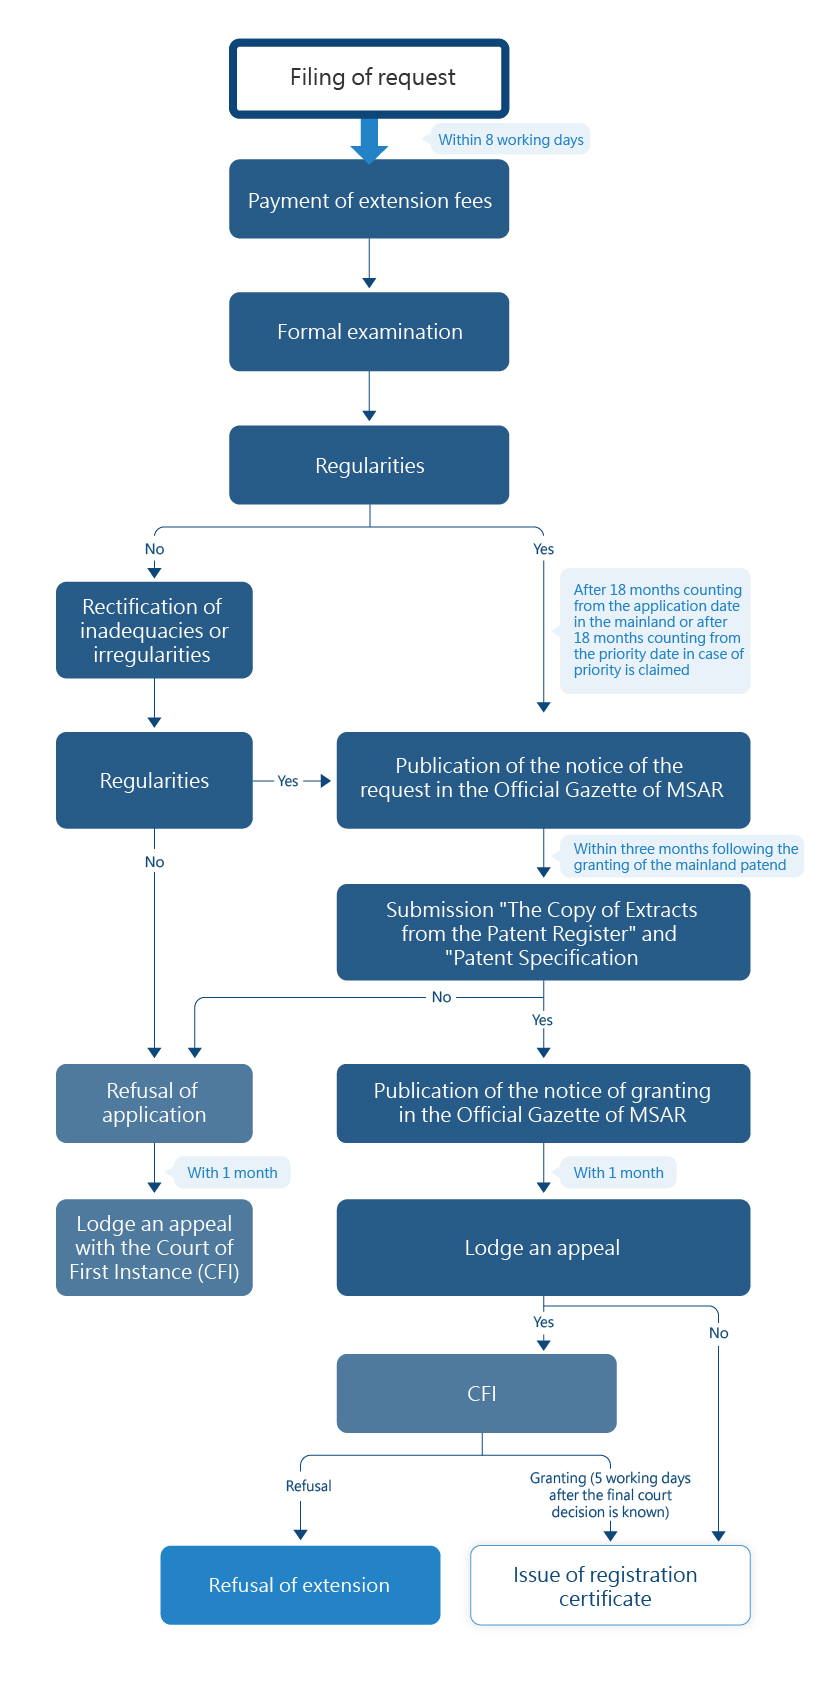 Flowchart of Application Process for Extension of Application of Invention Patent from the CNIPA